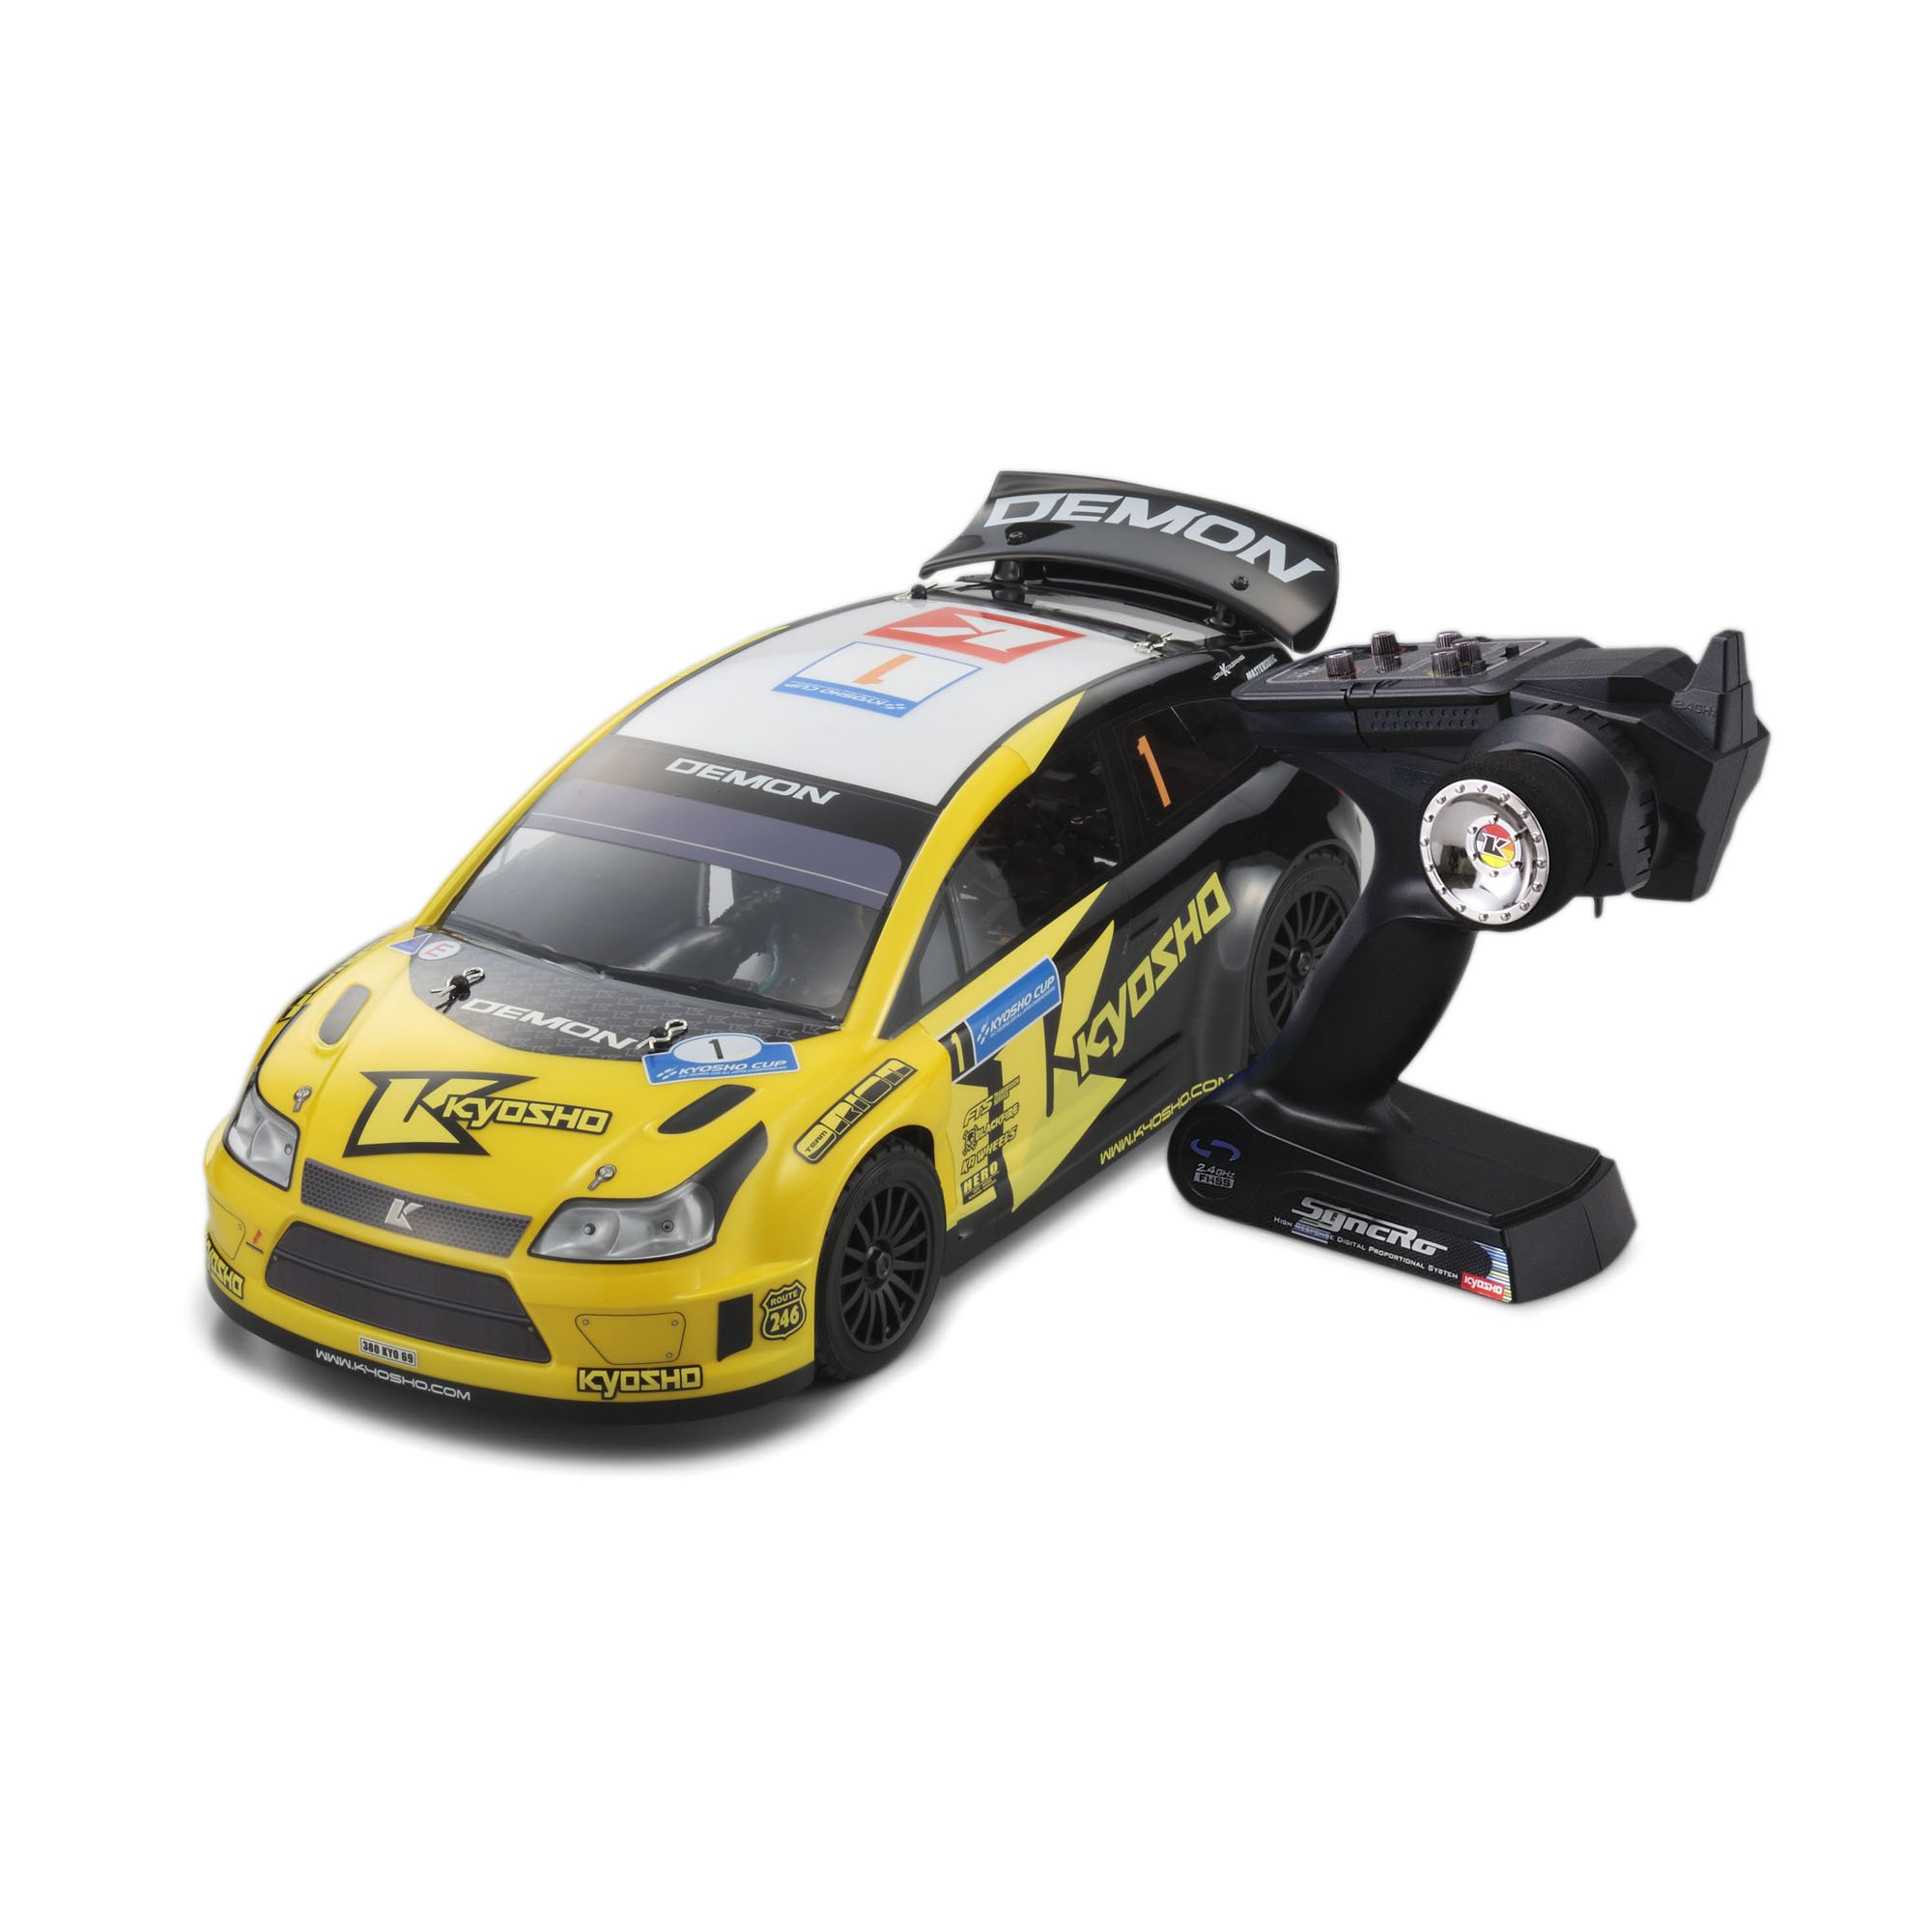 Kyosho EP 4WD R/S DRX Demon RC Car (1/9 Scale) with KT-201 by Kyosho